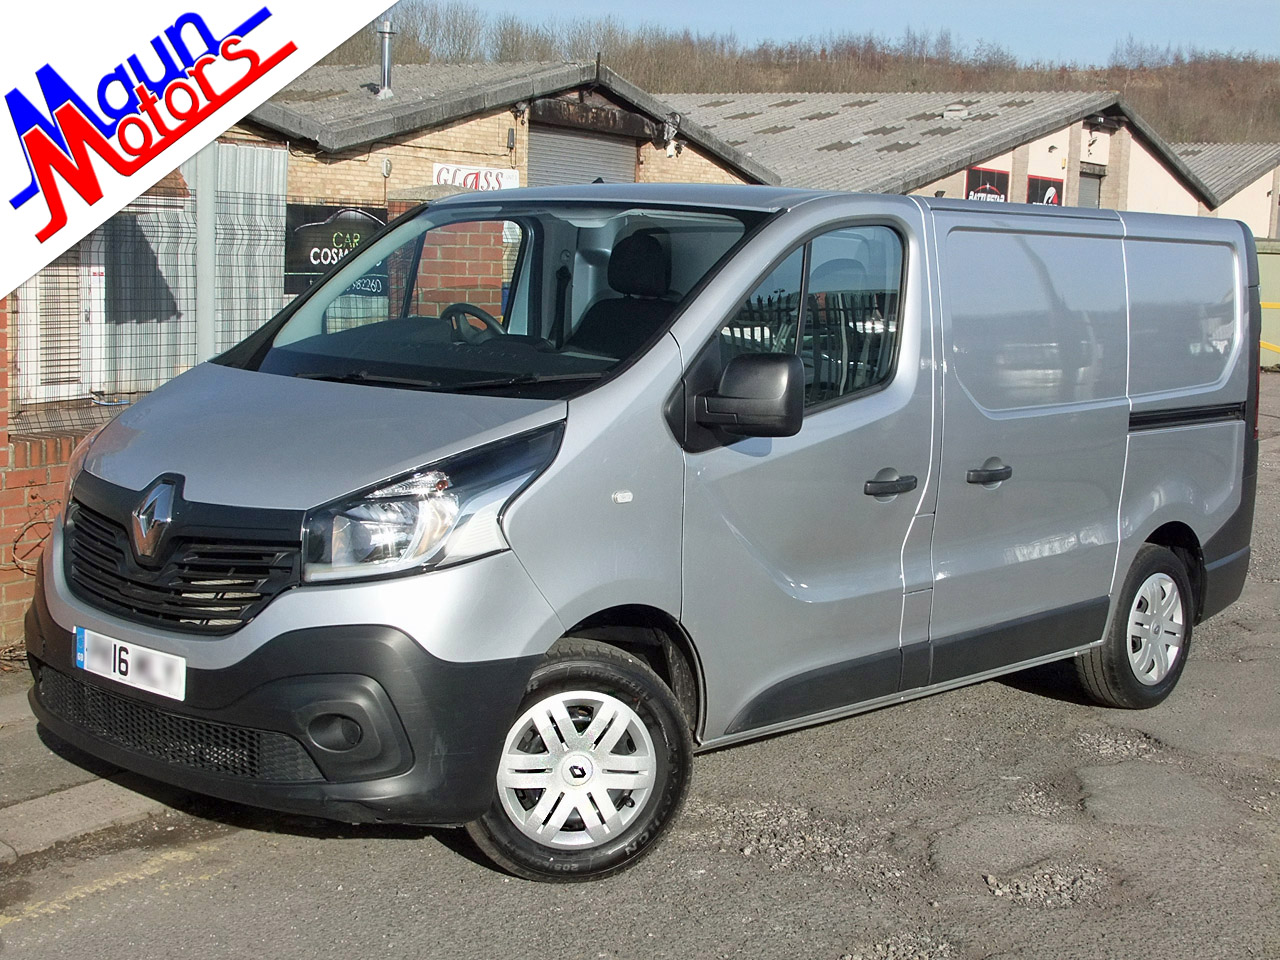 Renault Trafic used vans for sale